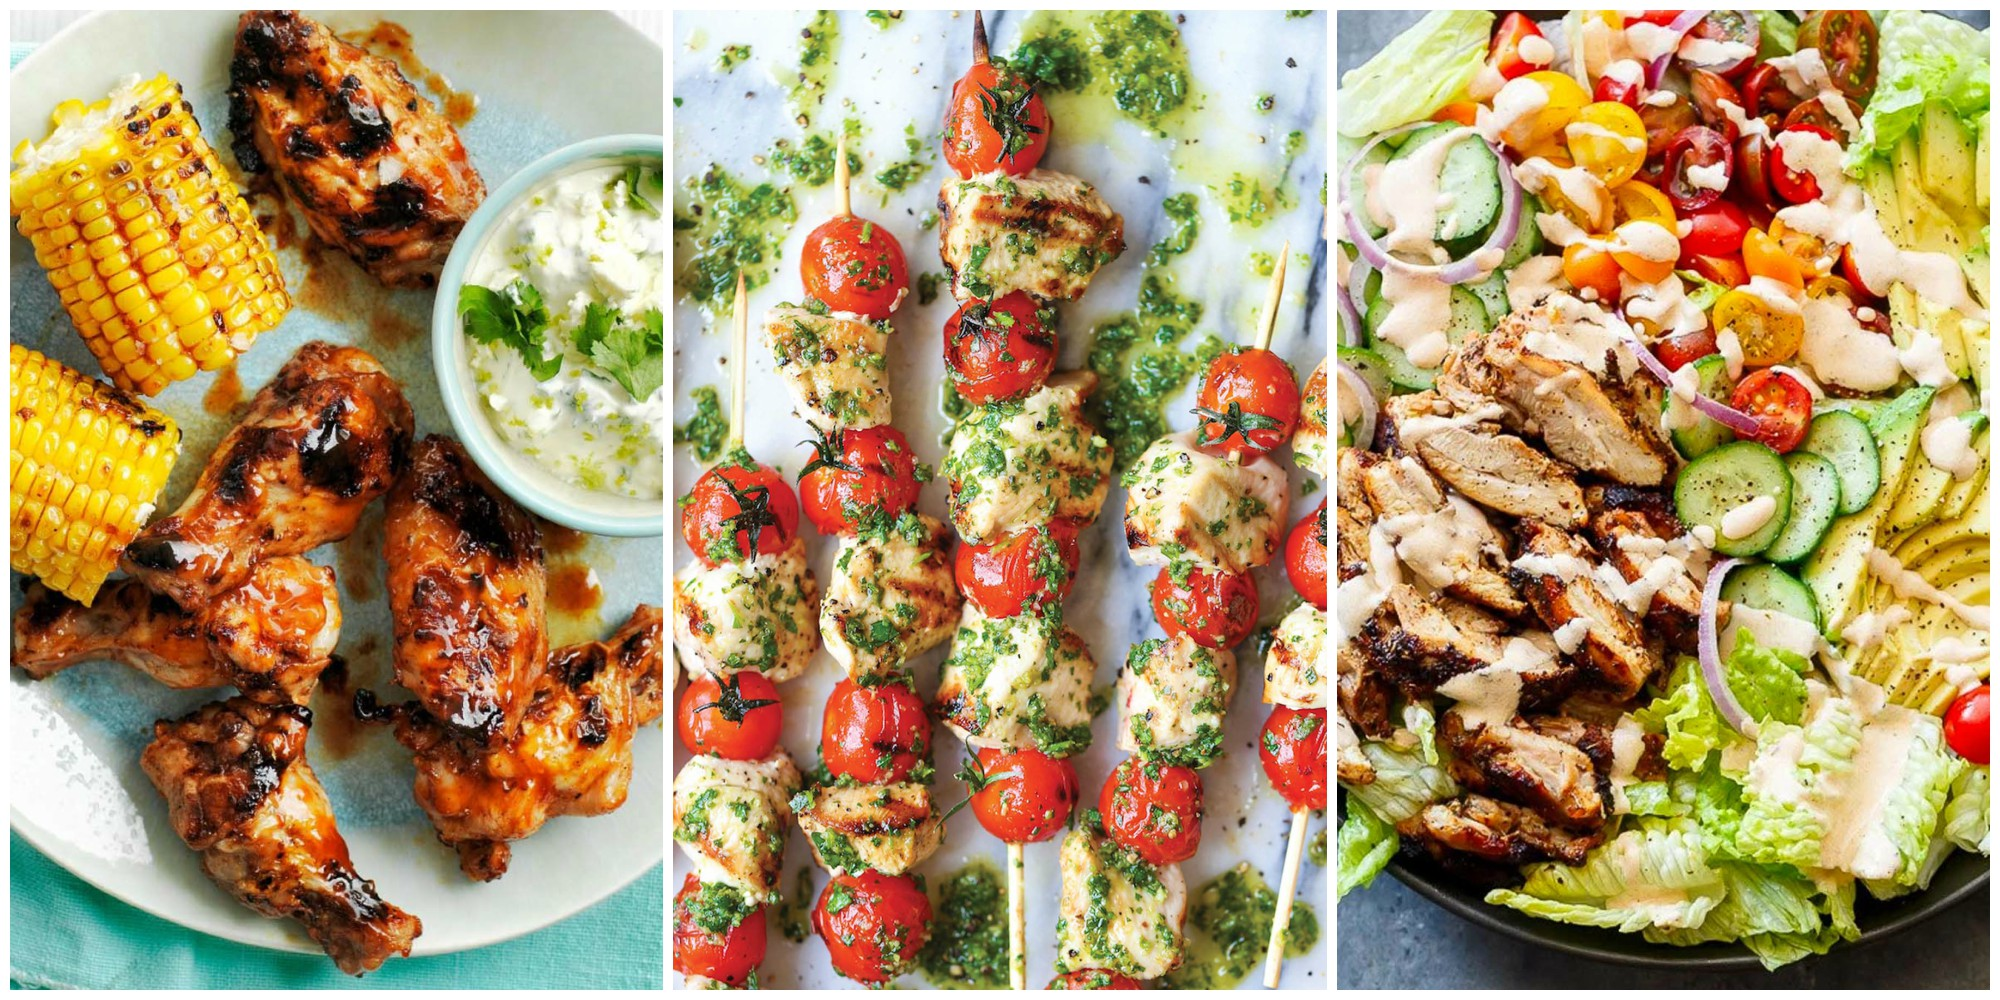 13 best grilled chicken recipes dinner ideas with for Good side dishes for grilled chicken